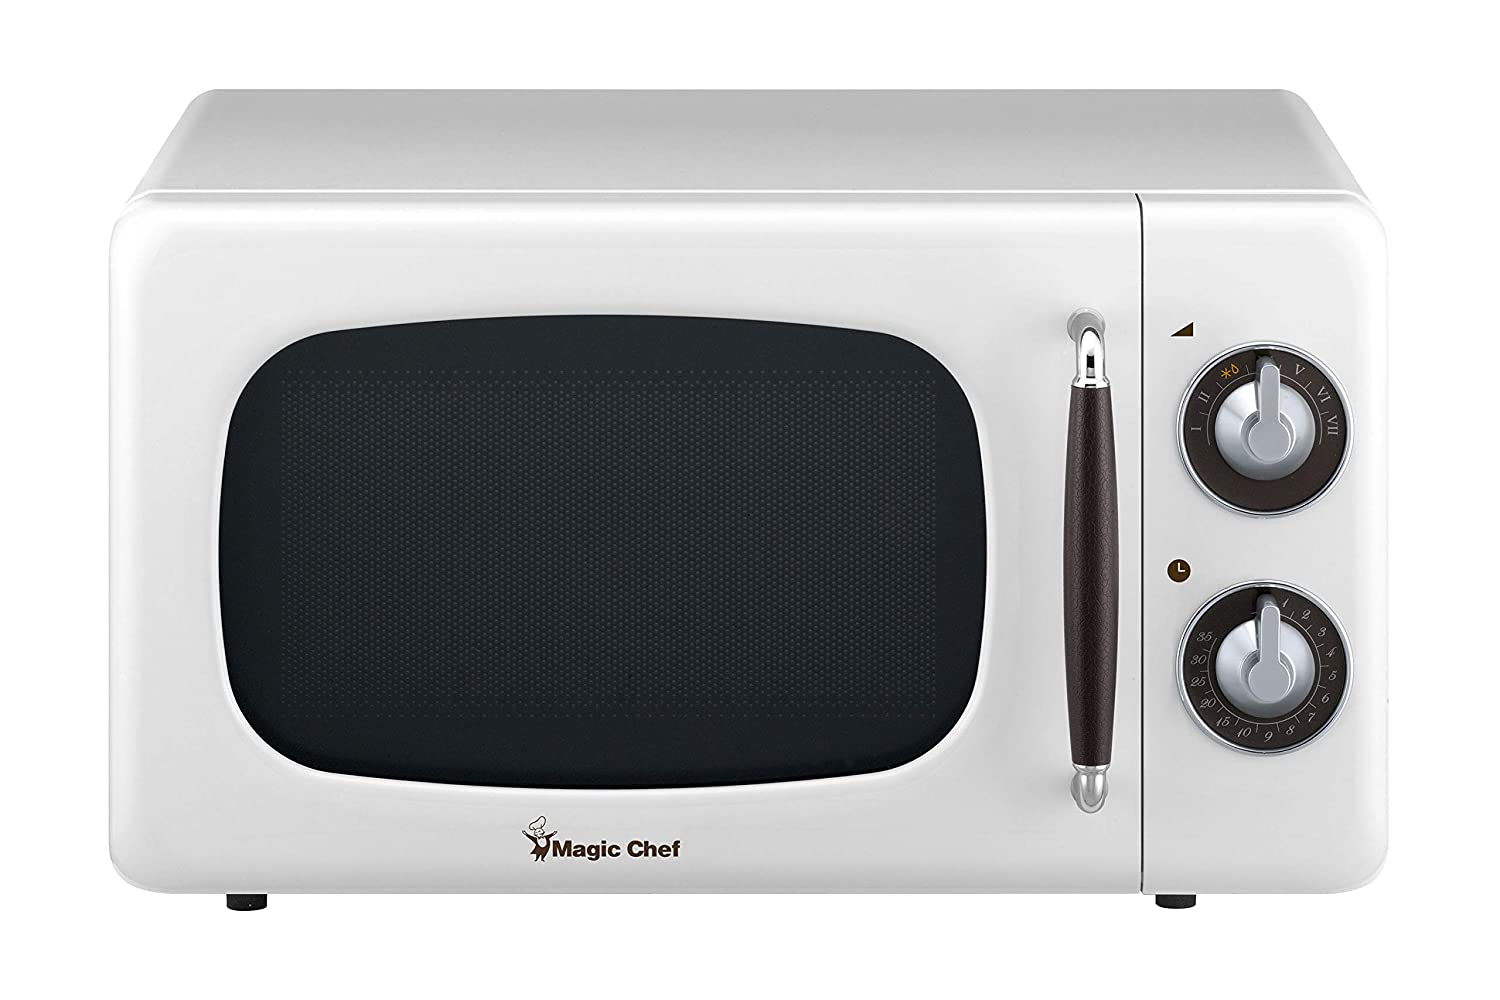 Magic Chef MCD770CW White 0.7-Cu. Ft. 700W Retro Countertop Microwave Oven, 7 Cu.Ft